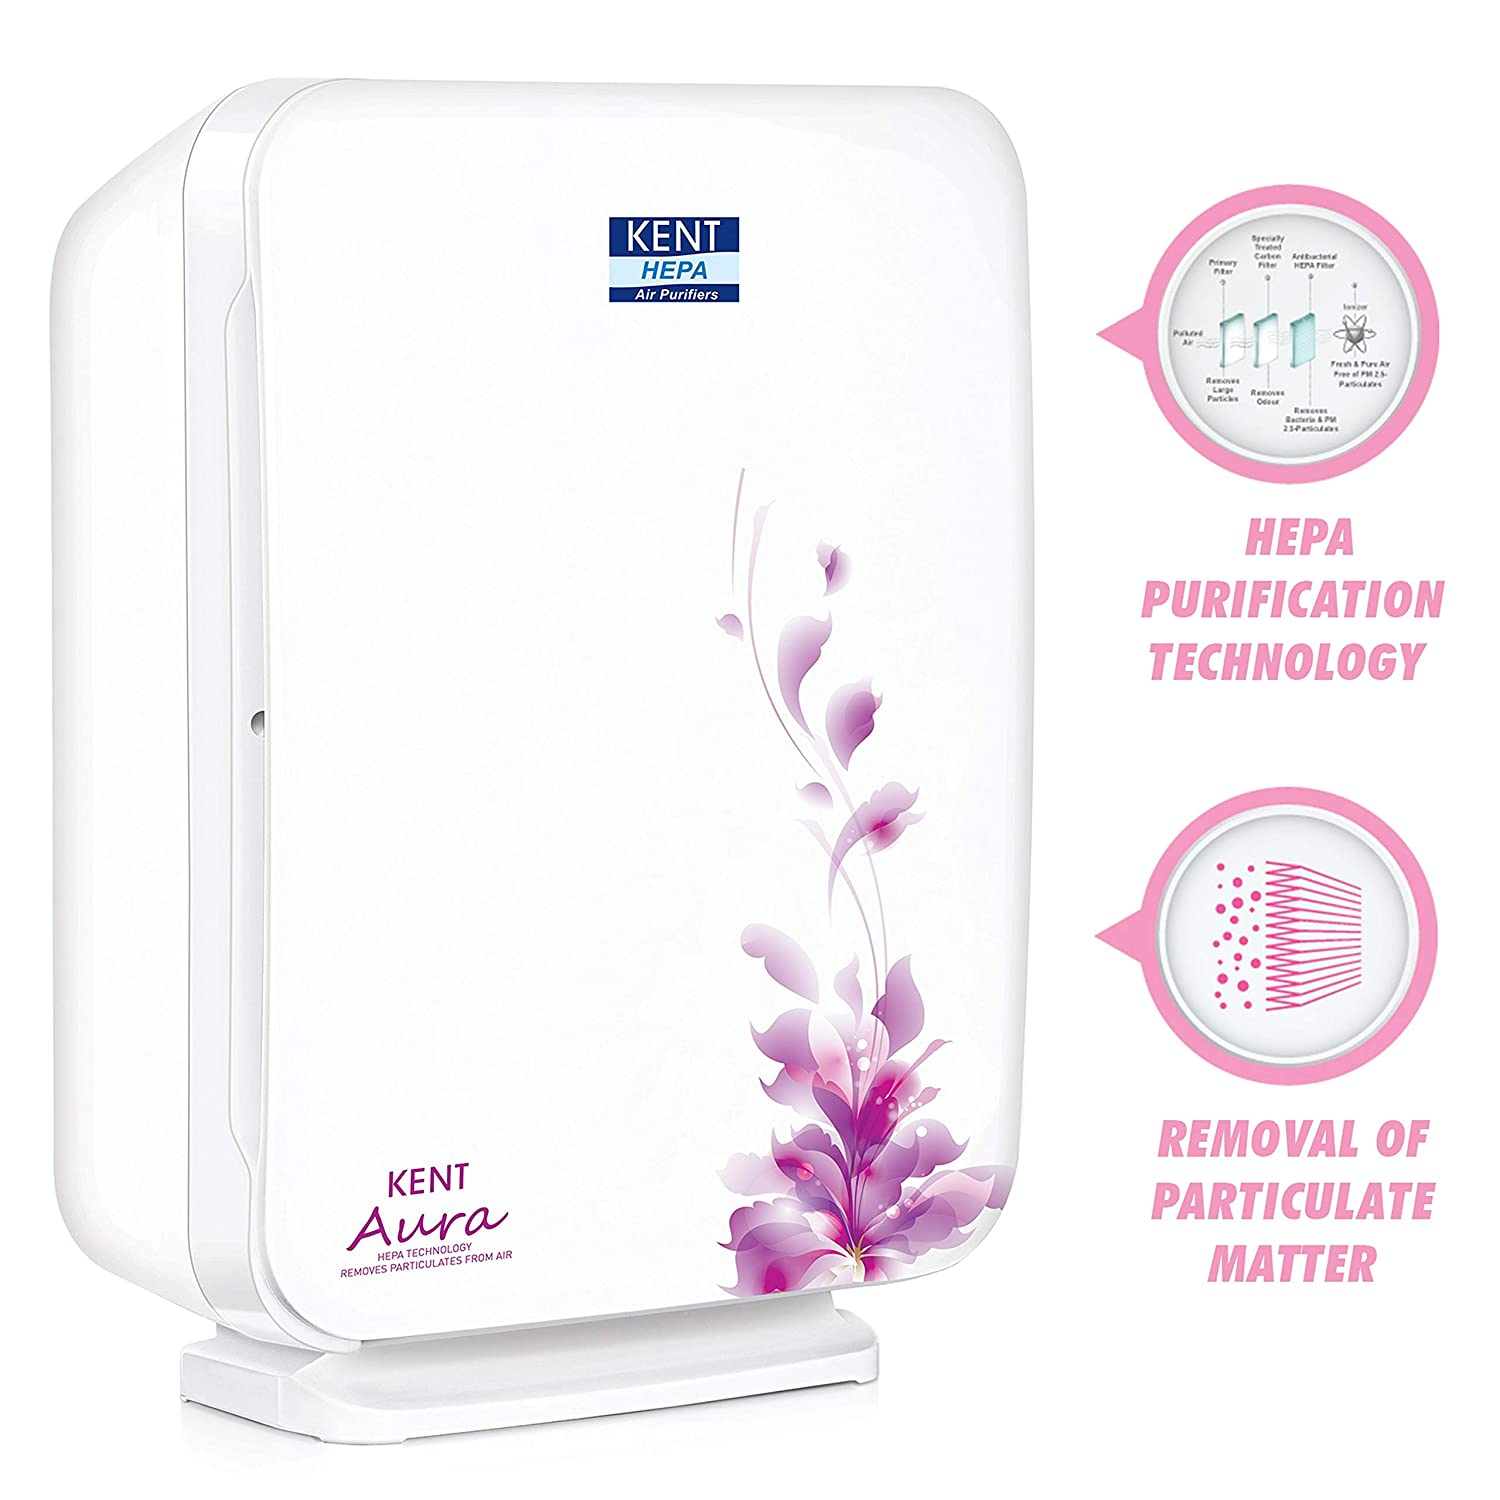 KENT Aura Room Air Purifier